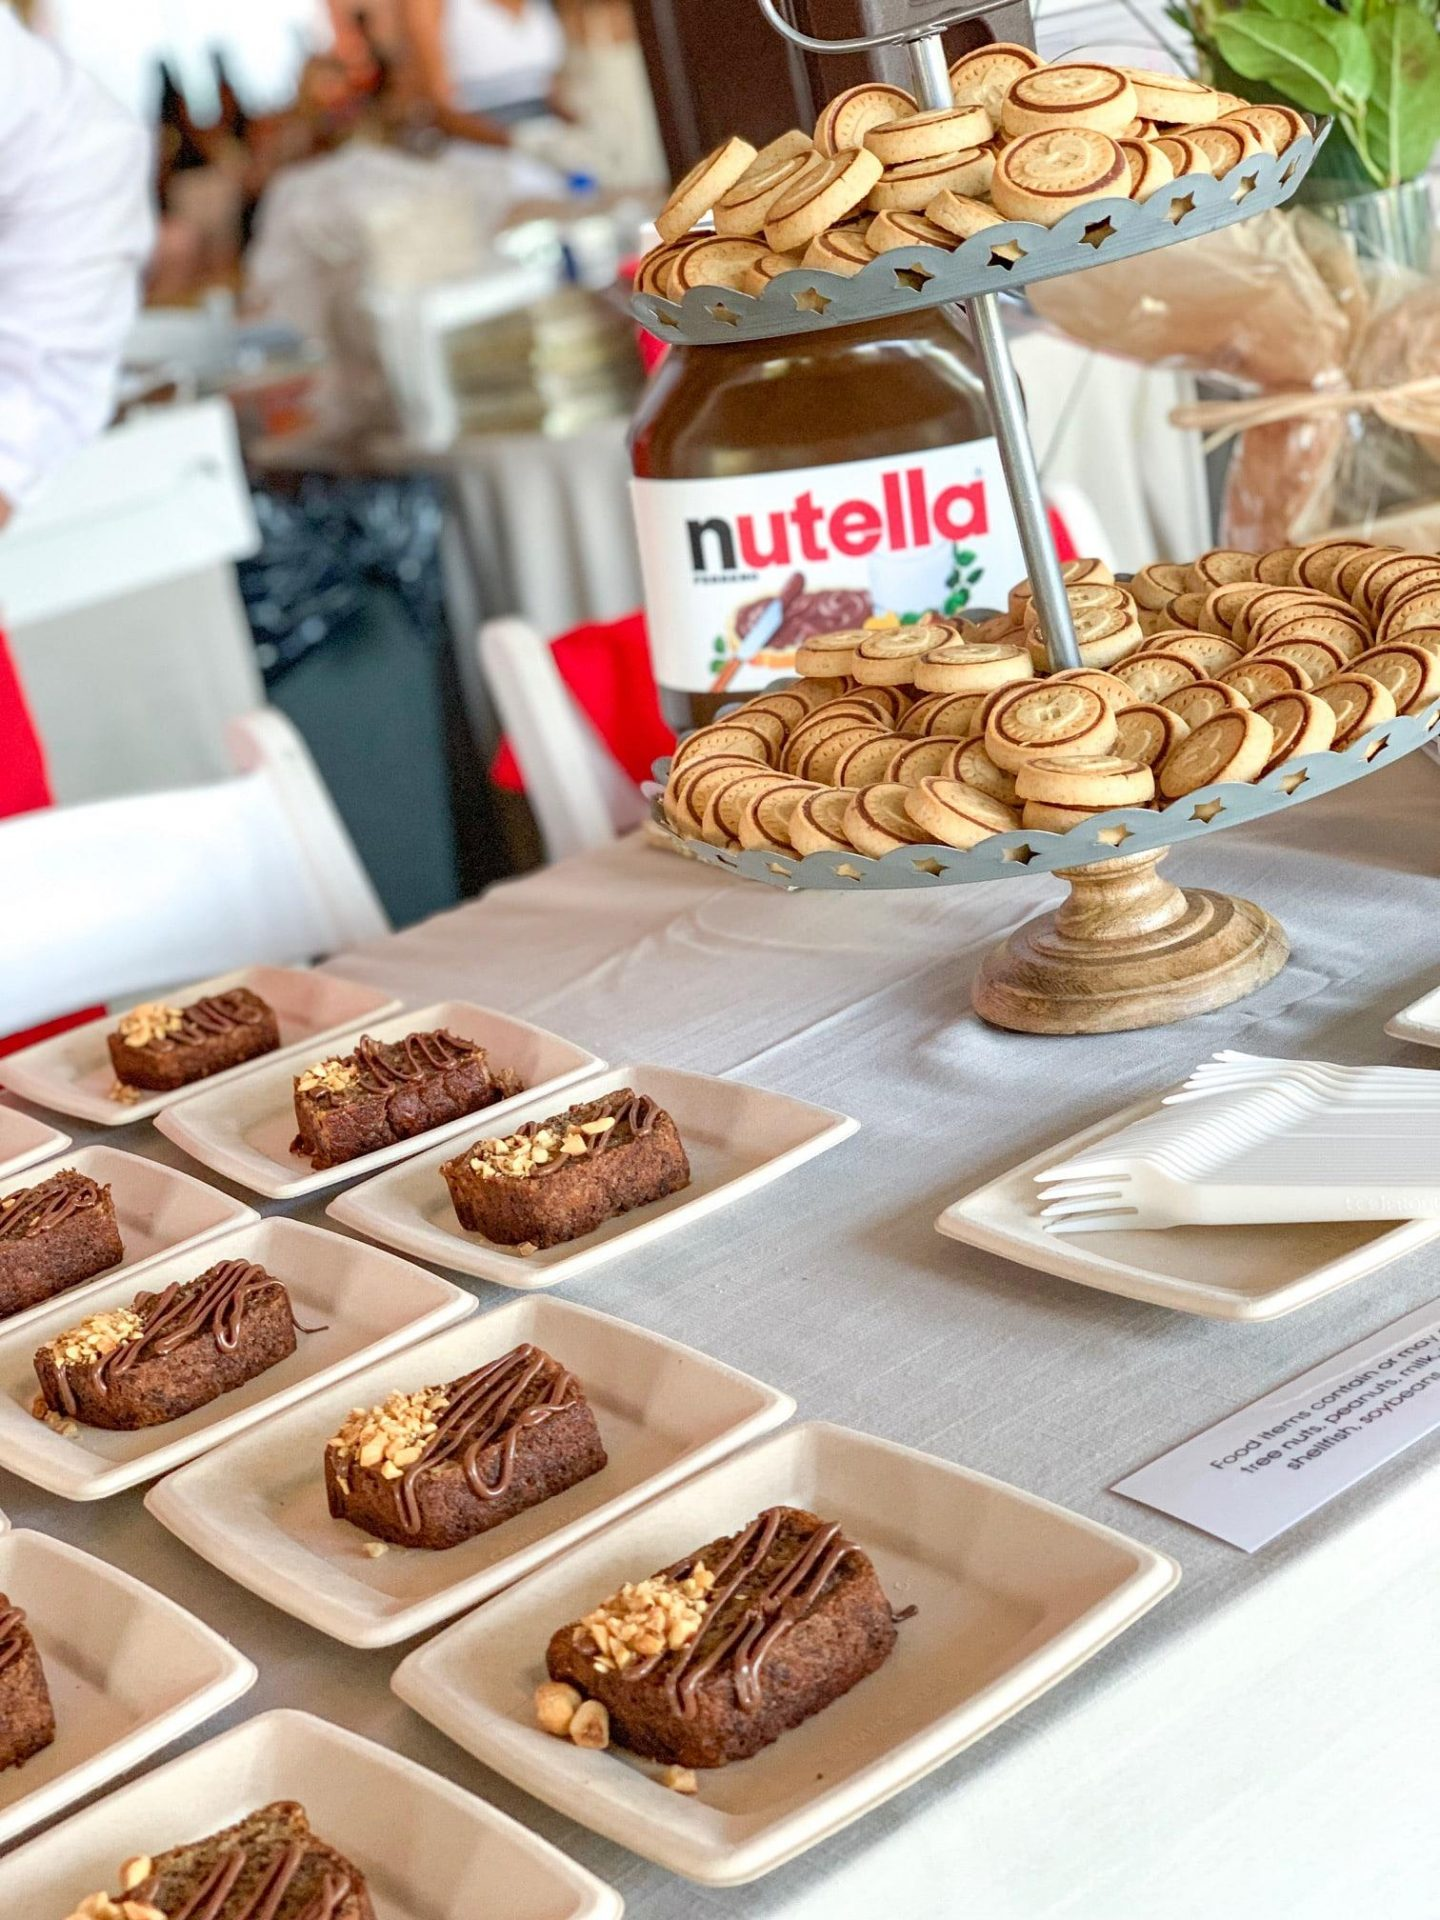 hamptons happening samuel waxman cancer event east end taste nutella dessert station